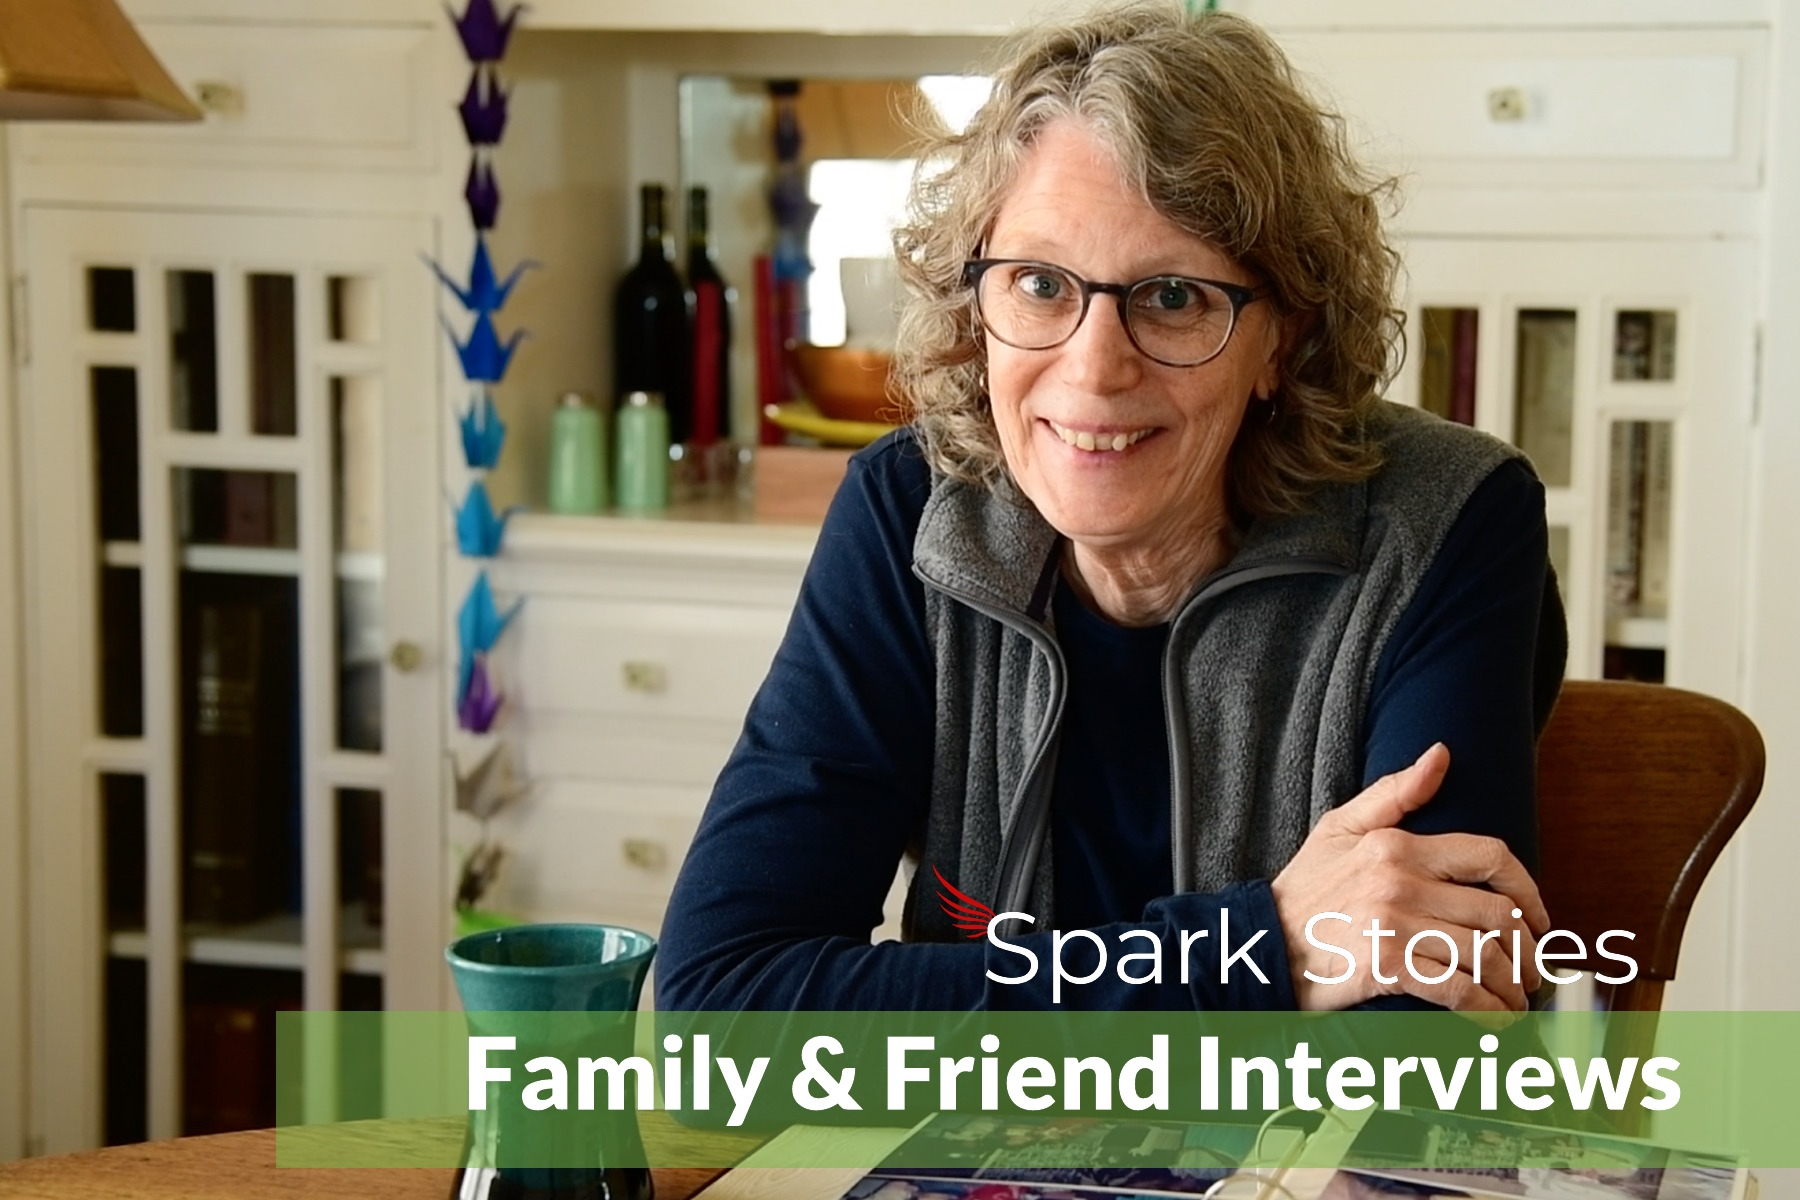 Spark Family & Friend Interviews.jpg